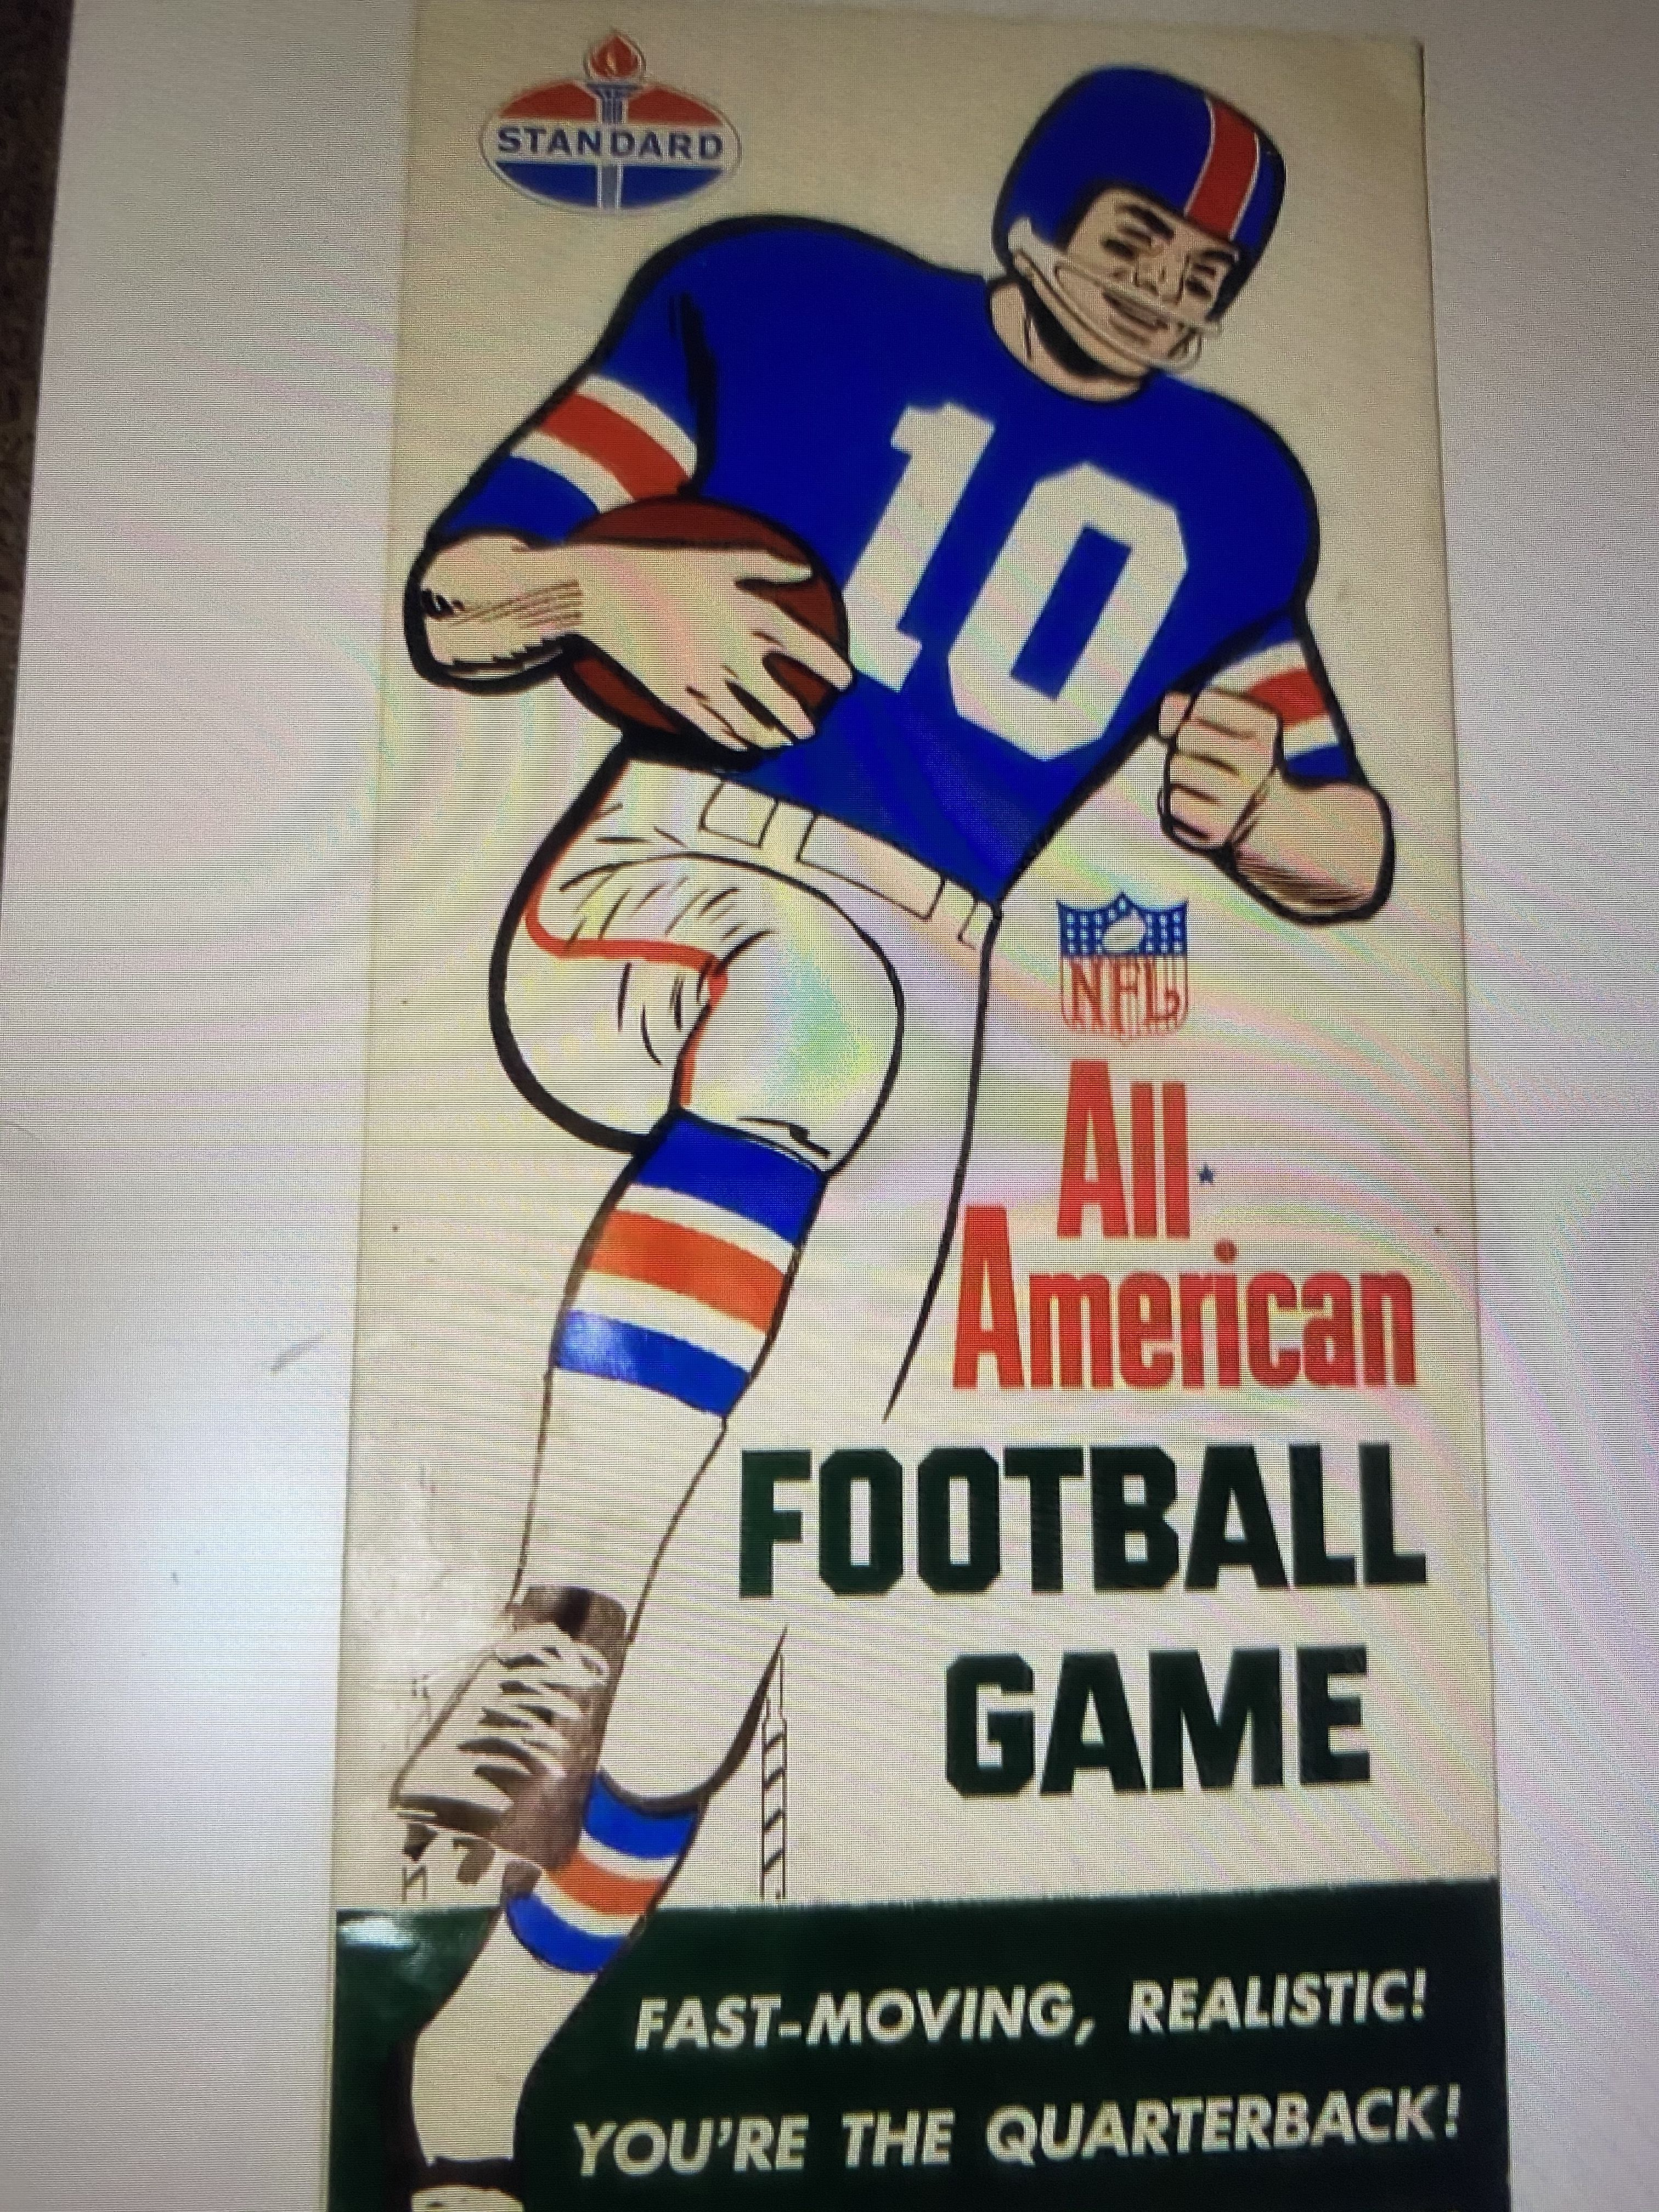 NFL All American Football Game